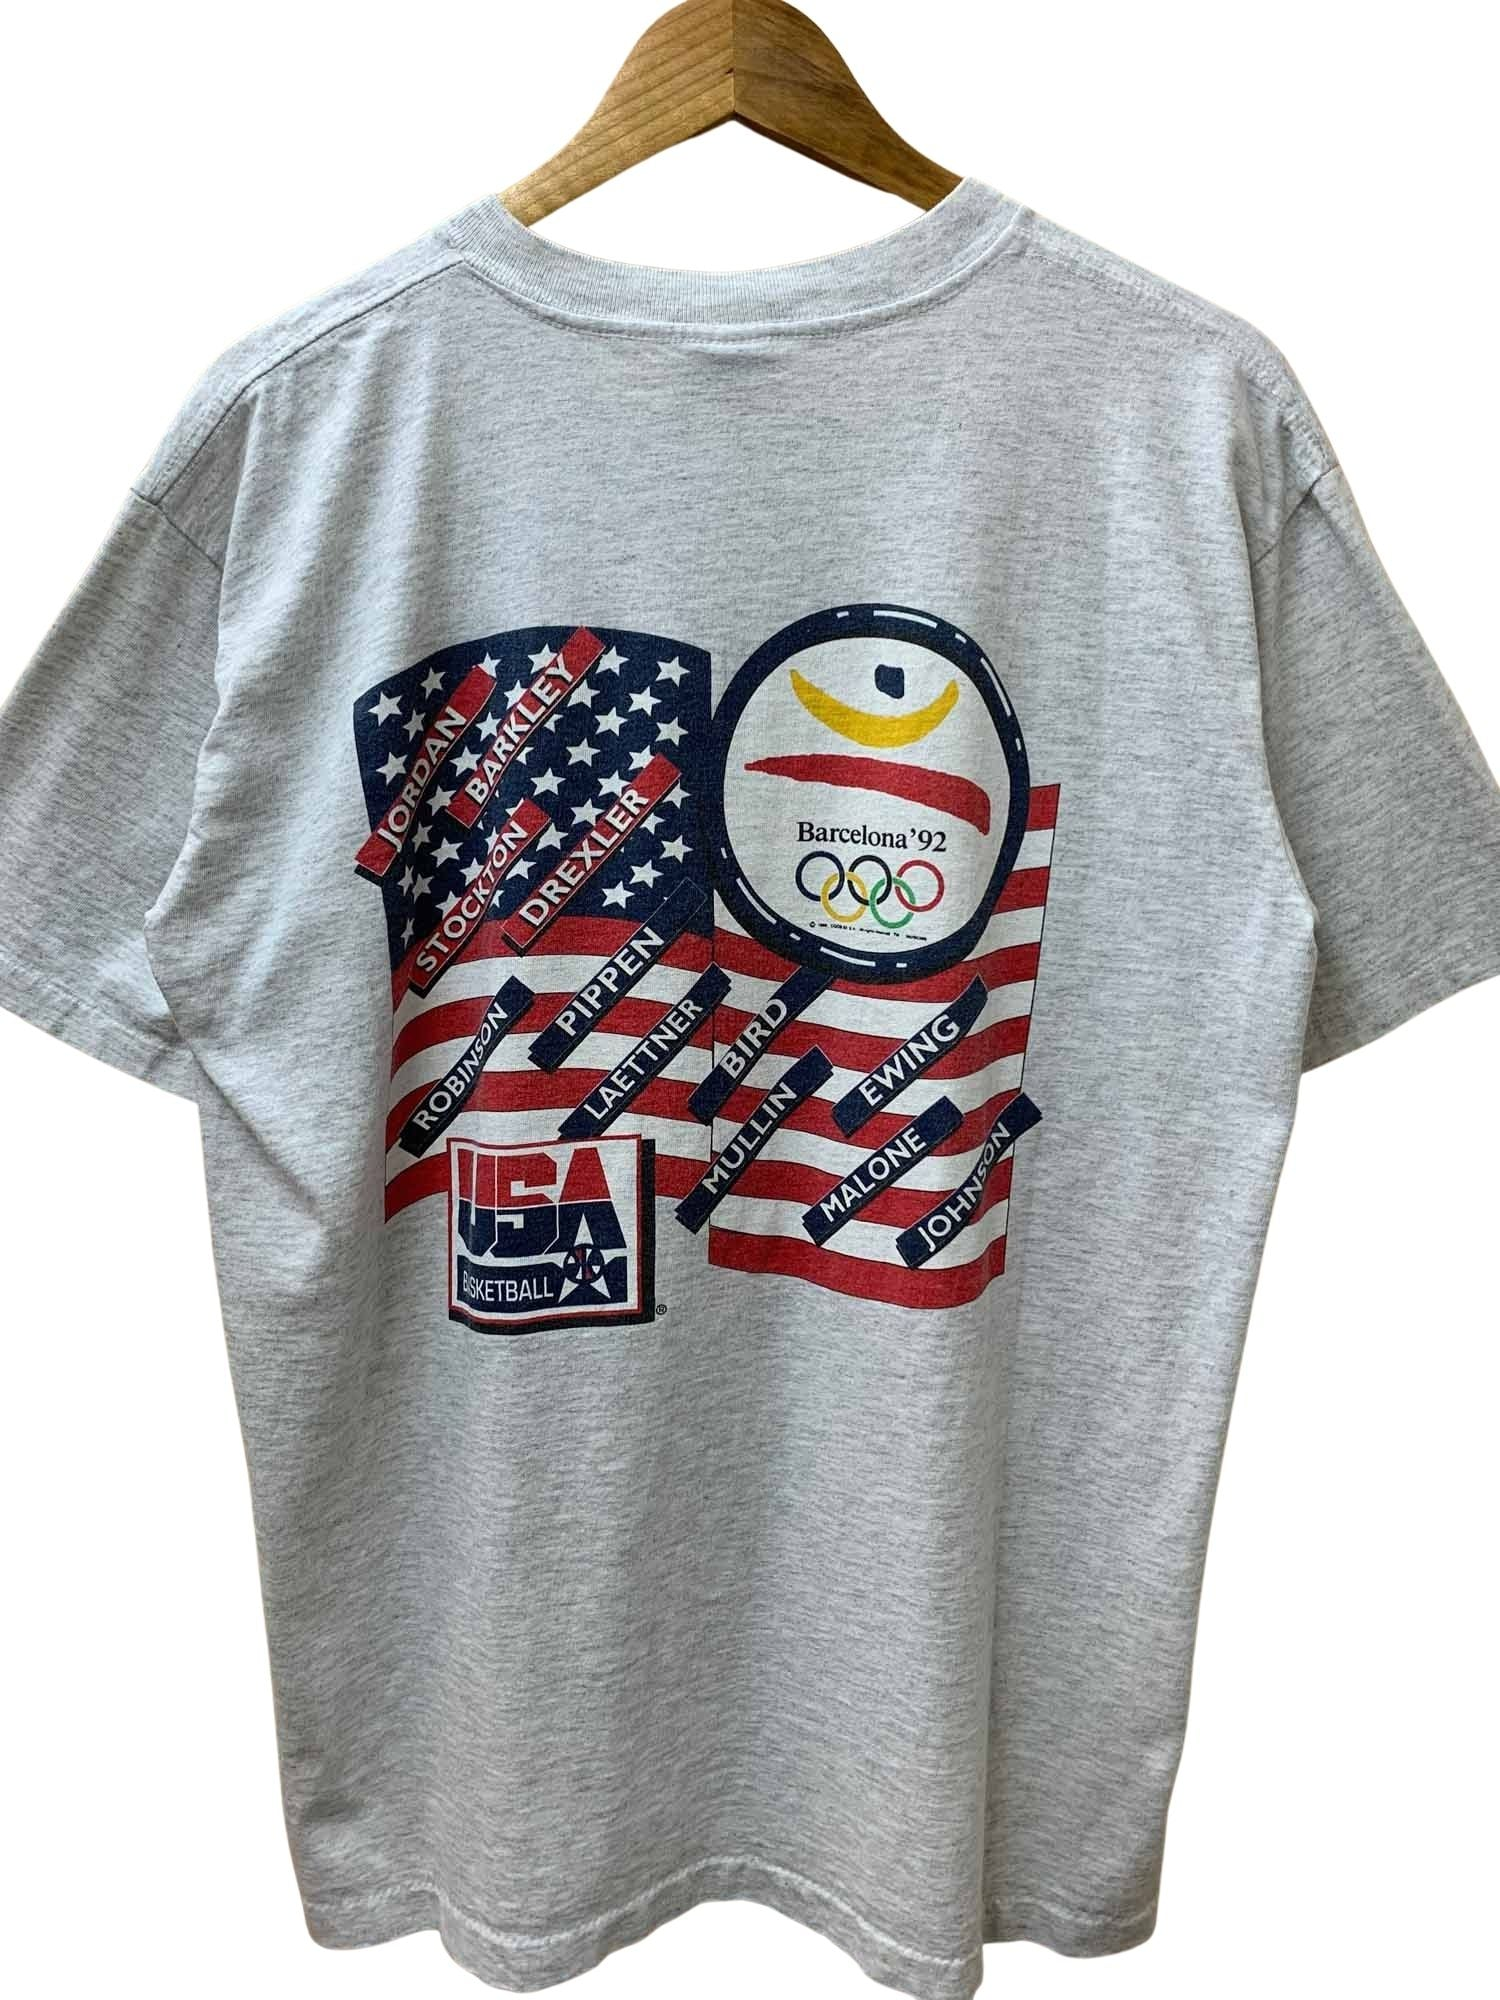 1992 USA DREAM TEAM caricature TEE